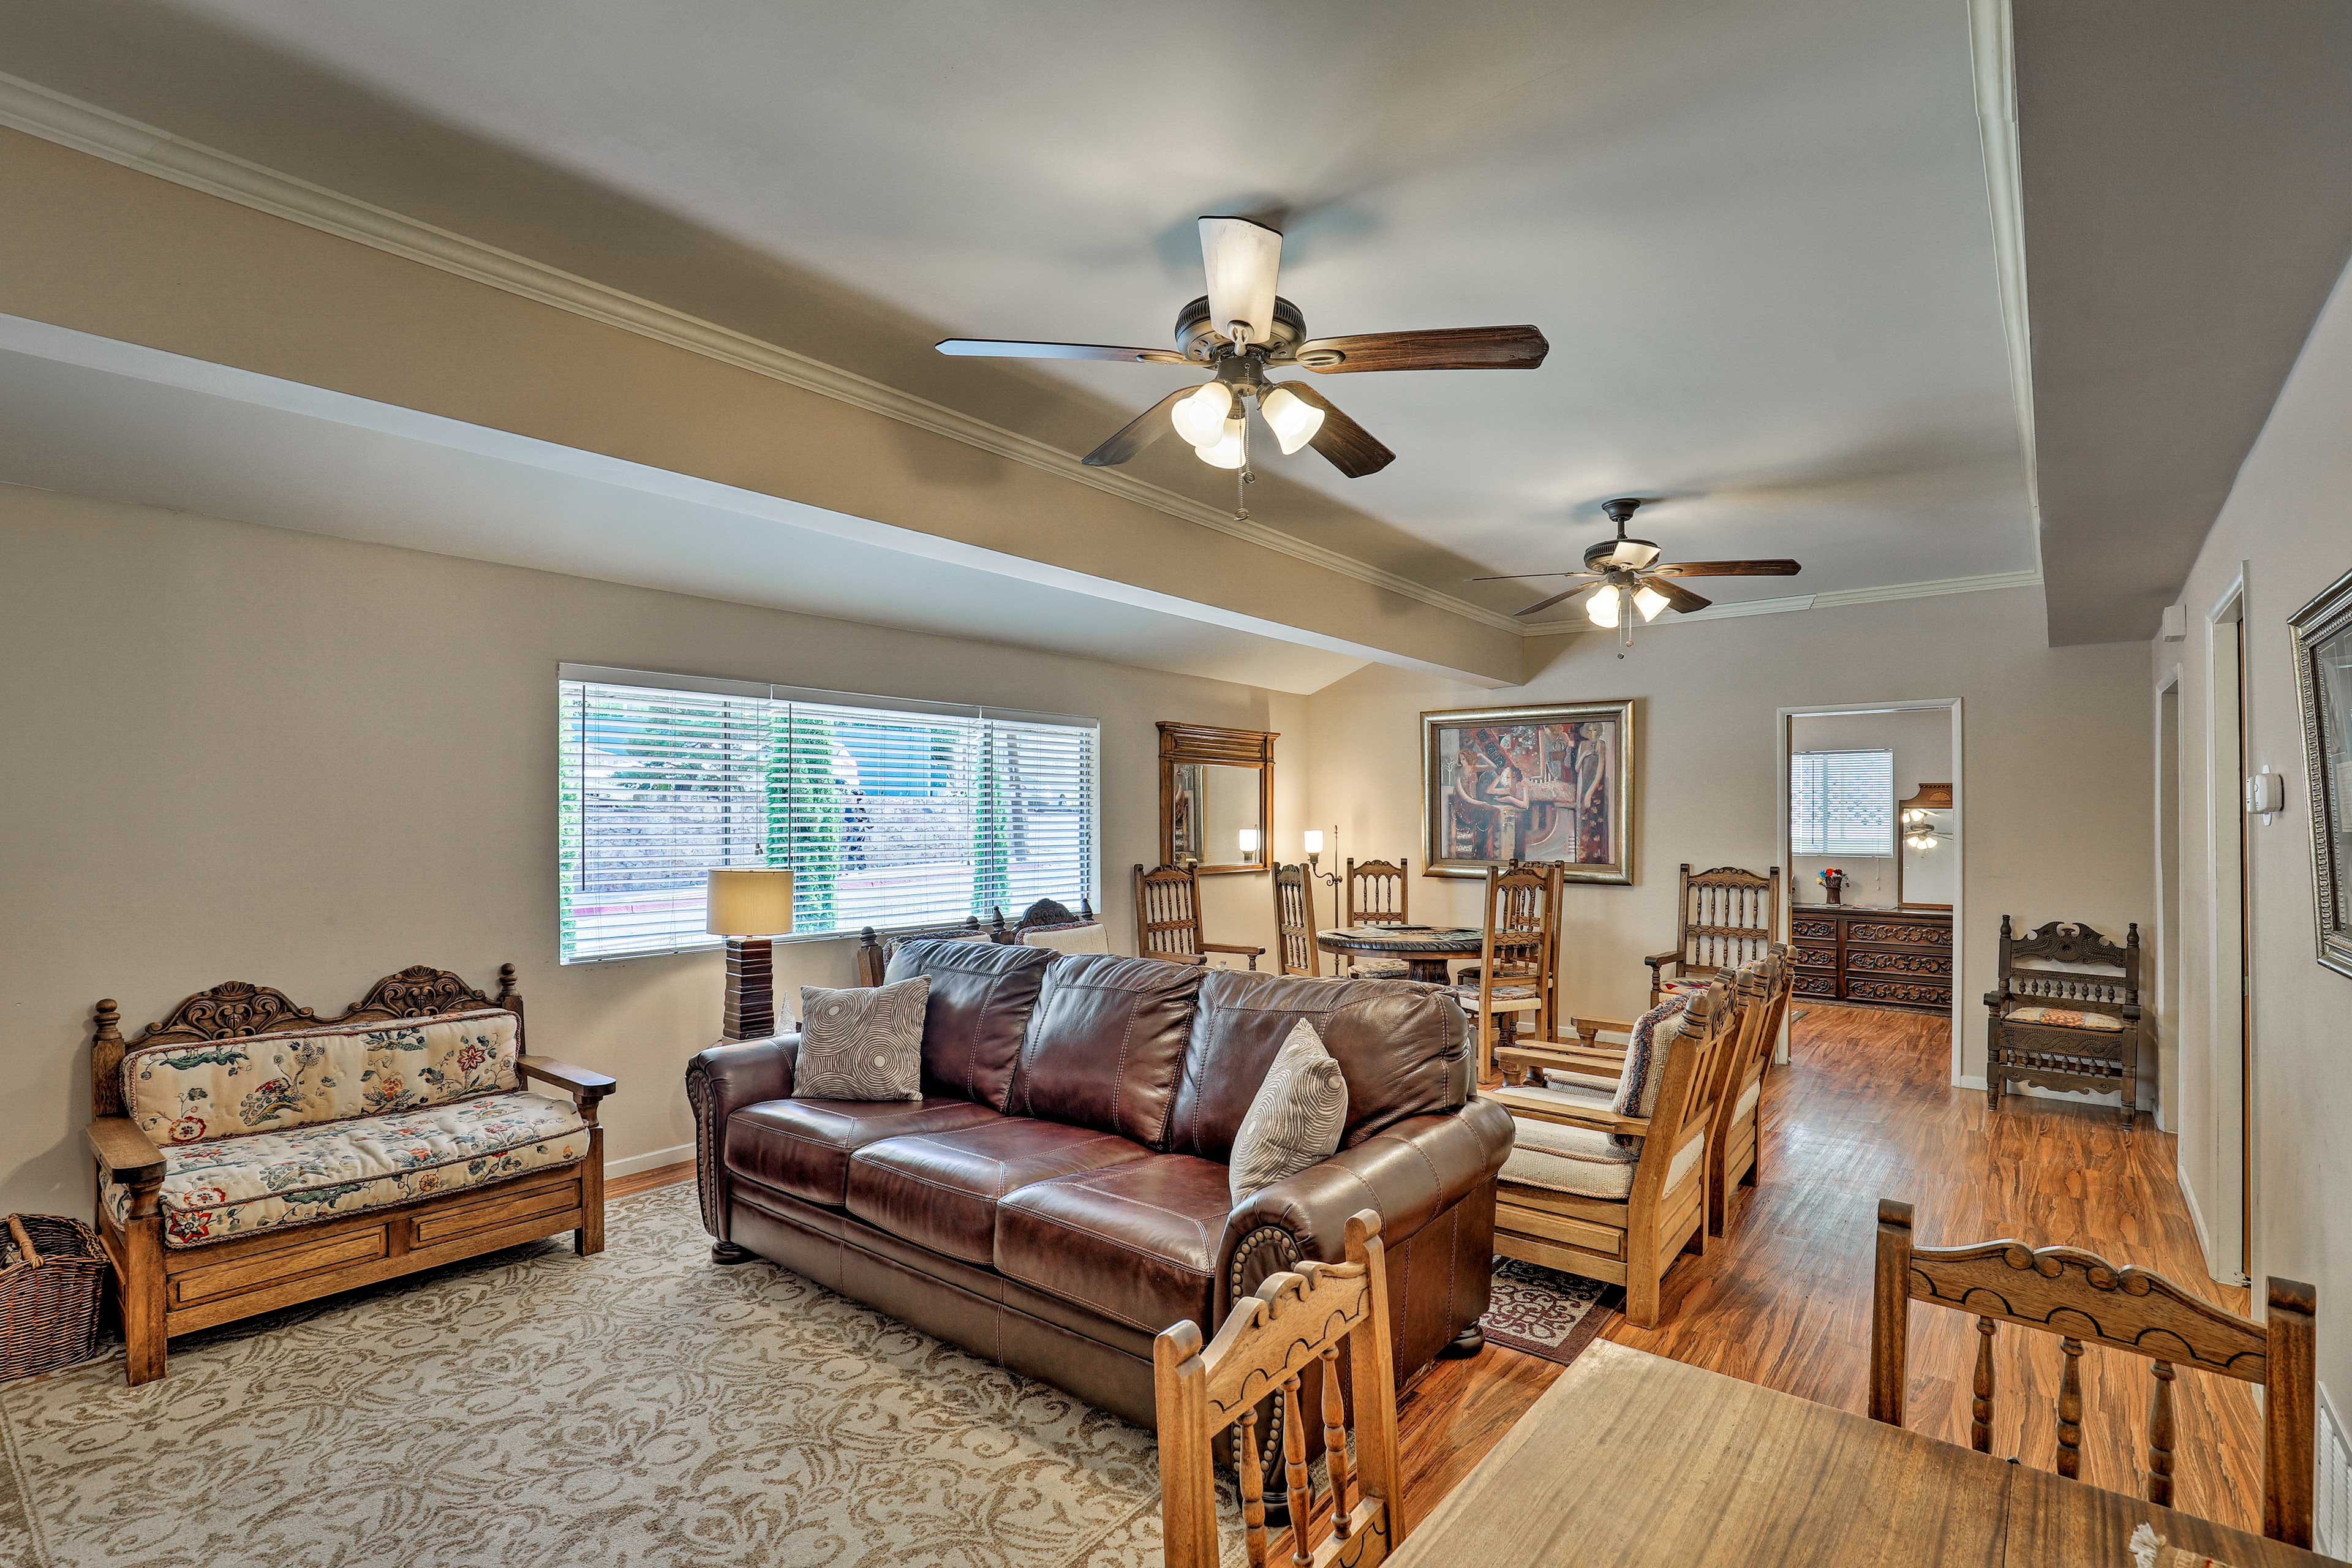 Ceiling fans will keep the home nice and cool for you.